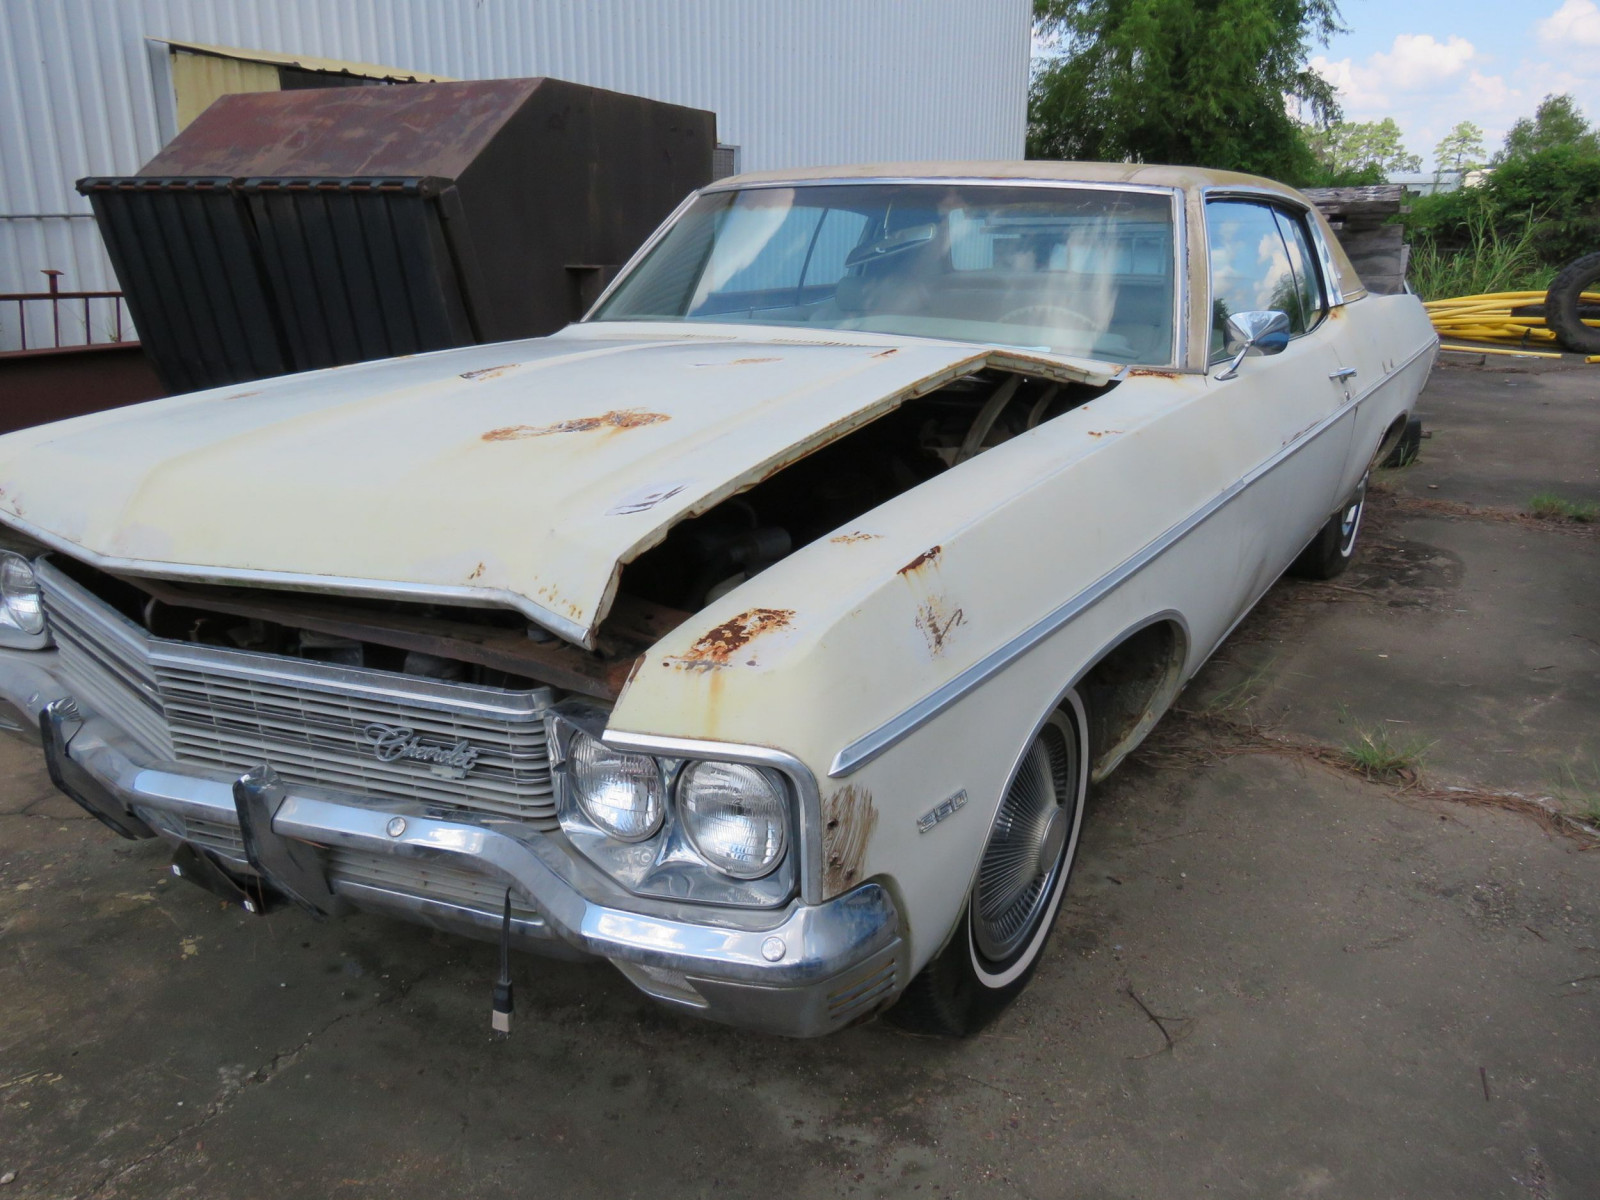 1970 Chevrolet Caprice 2dr HT - Image 1